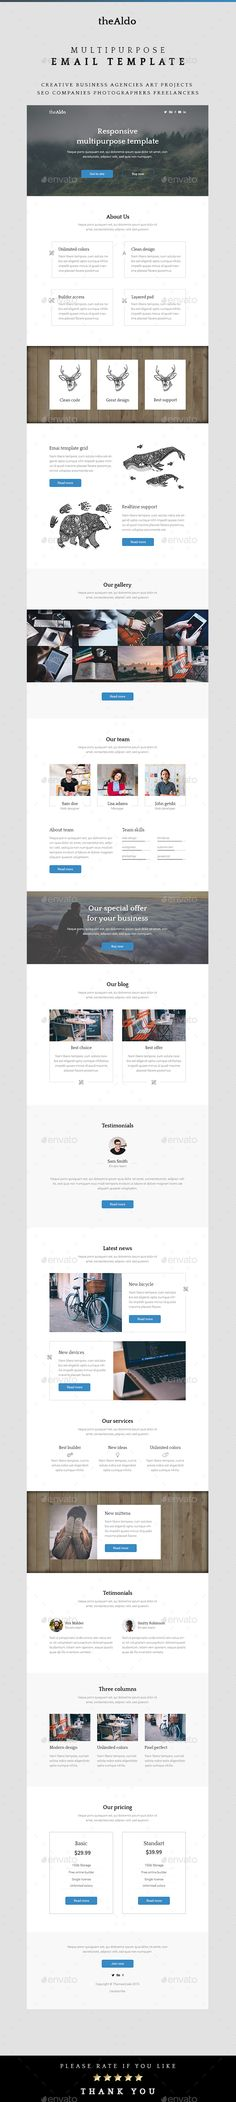 Aldo – Multipurpose Email Template Free Website Templates, Email Templates, Newsletter Templates, Infographic Templates, List Template, Aldo, Layout, Graphic Design